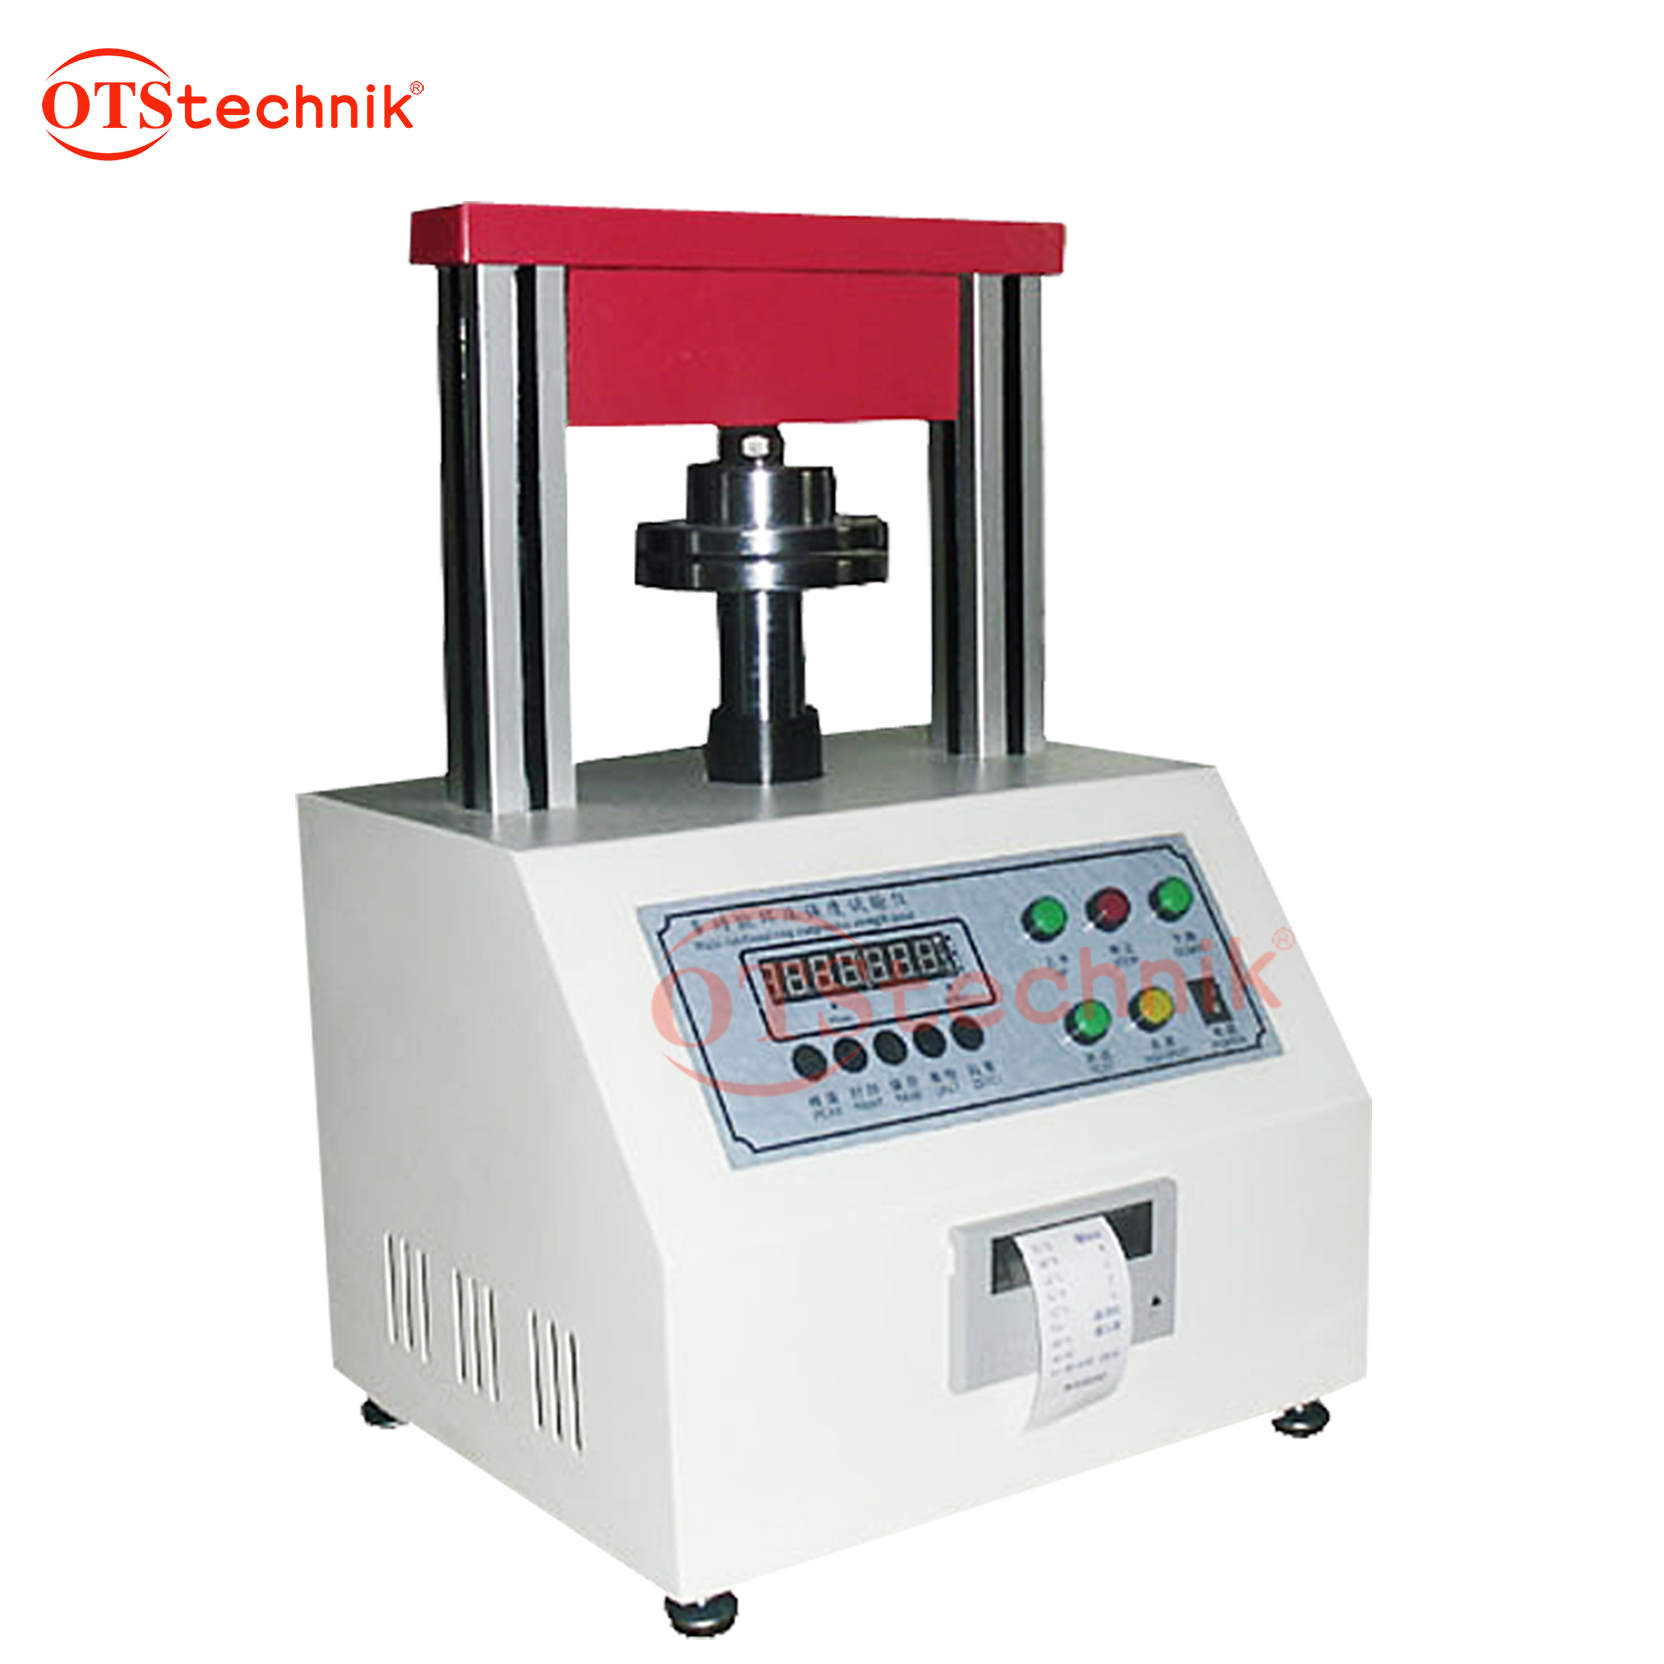 Cardboard edge strength testing machine